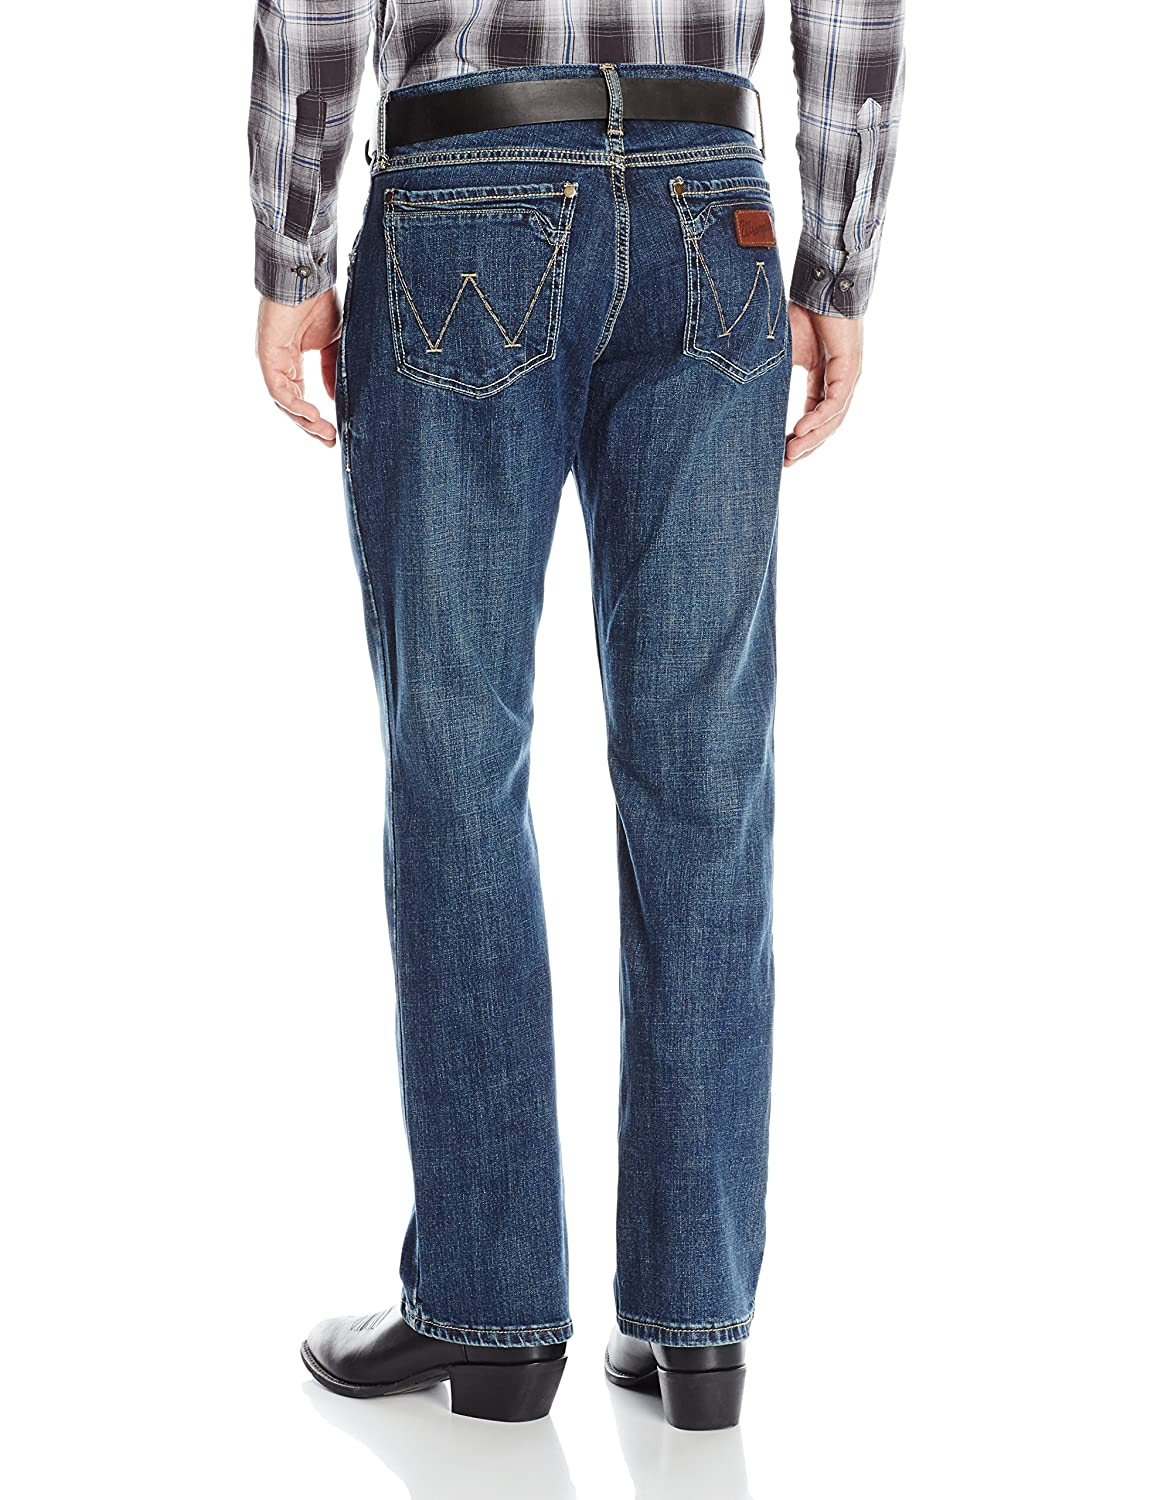 Wrangler Mens Retro Slim Fit Boot Cut Jeans, Layton, 36x36 ...